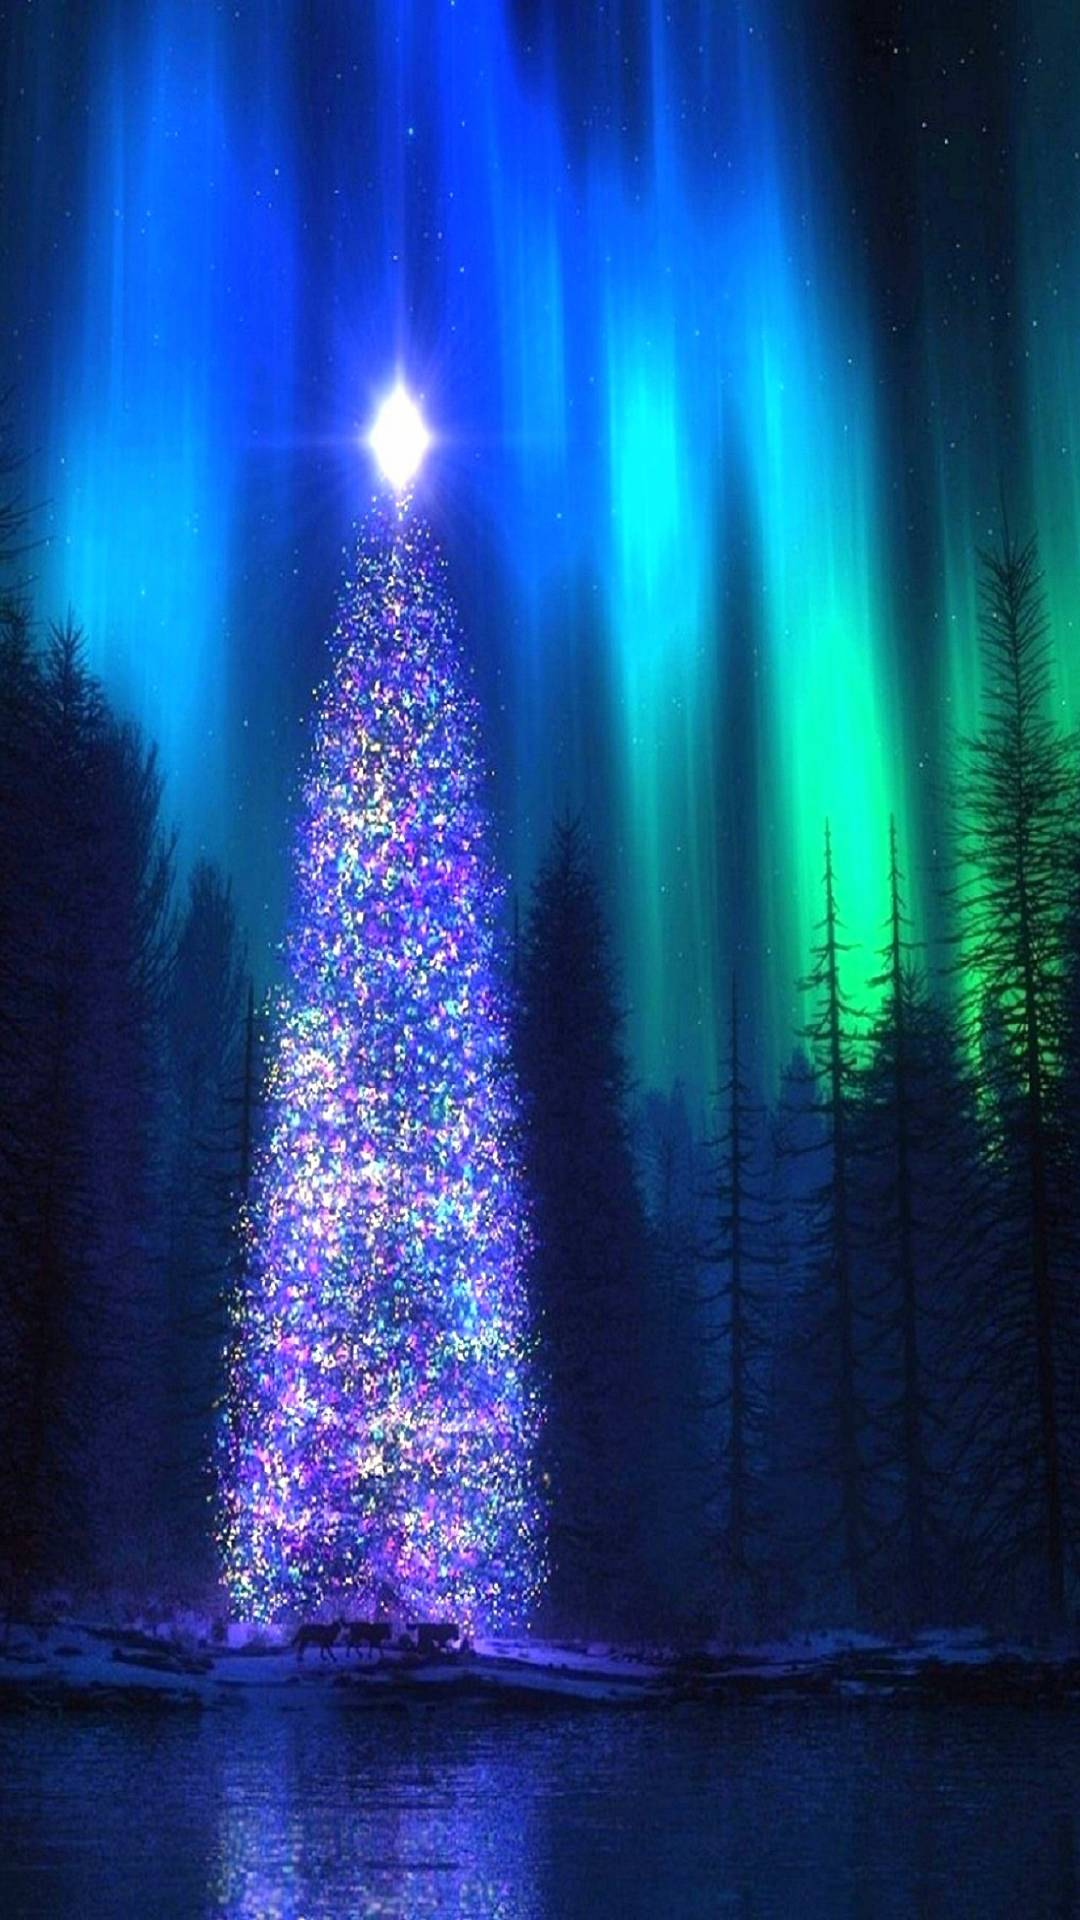 Cute Christmas Iphone Wallpapers Nothern Lights Christmas Tree Iphone Wallpaper Iphone